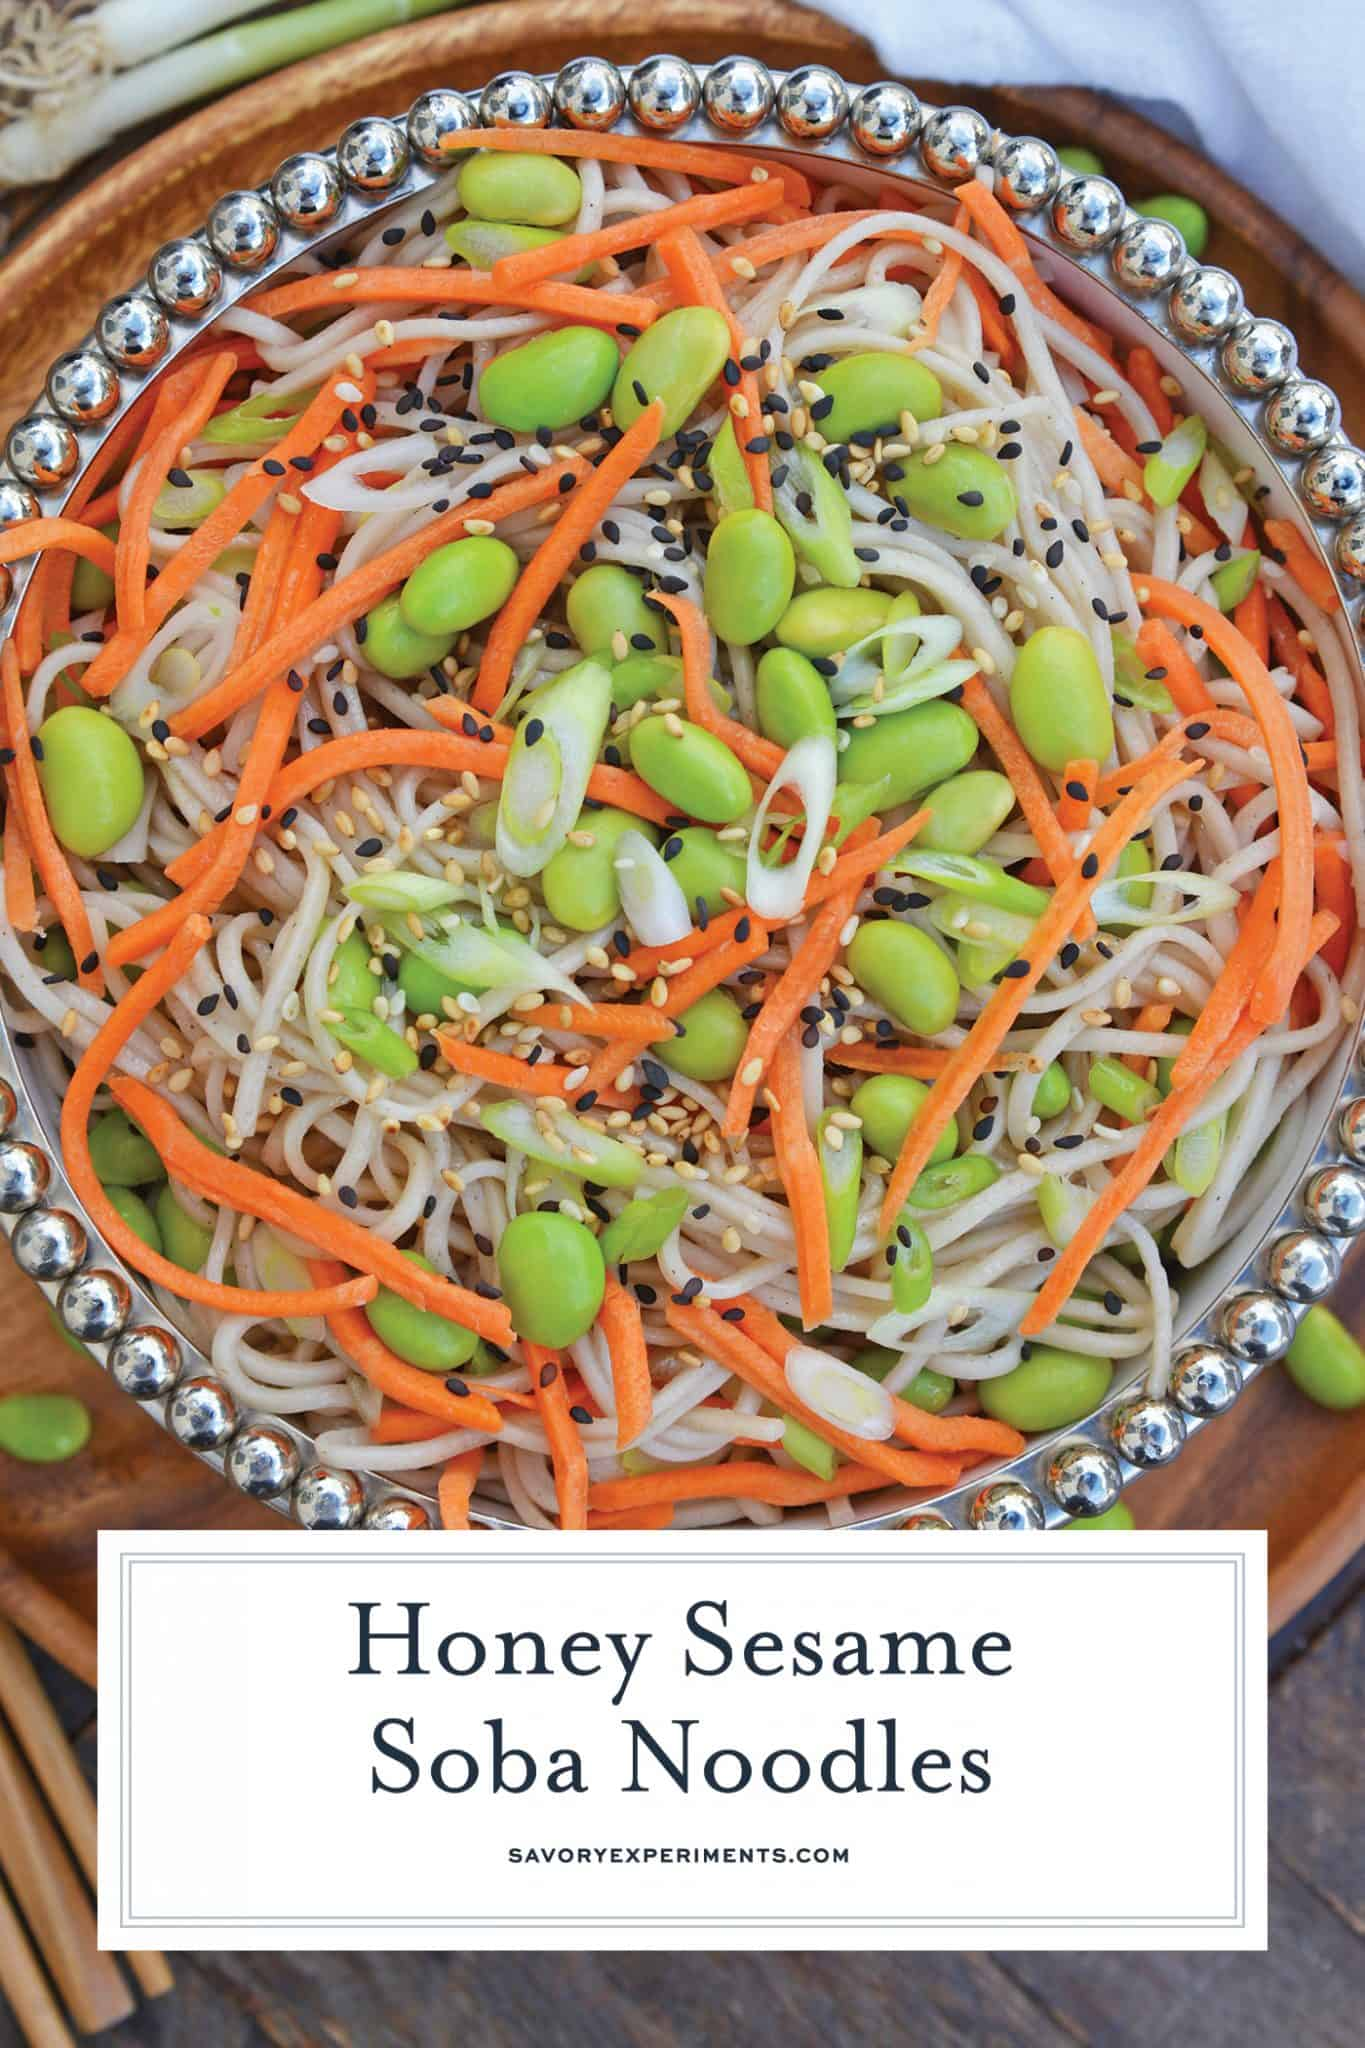 Sesame Soba Noodles are made from delicious buckwheat noodles tossed in a light Asian sauce, edamame, and carrots! This noodle salad is full of yummy flavors! #sobanoodlerecipe #whataresobanoodles? www.savoryexperiments.com